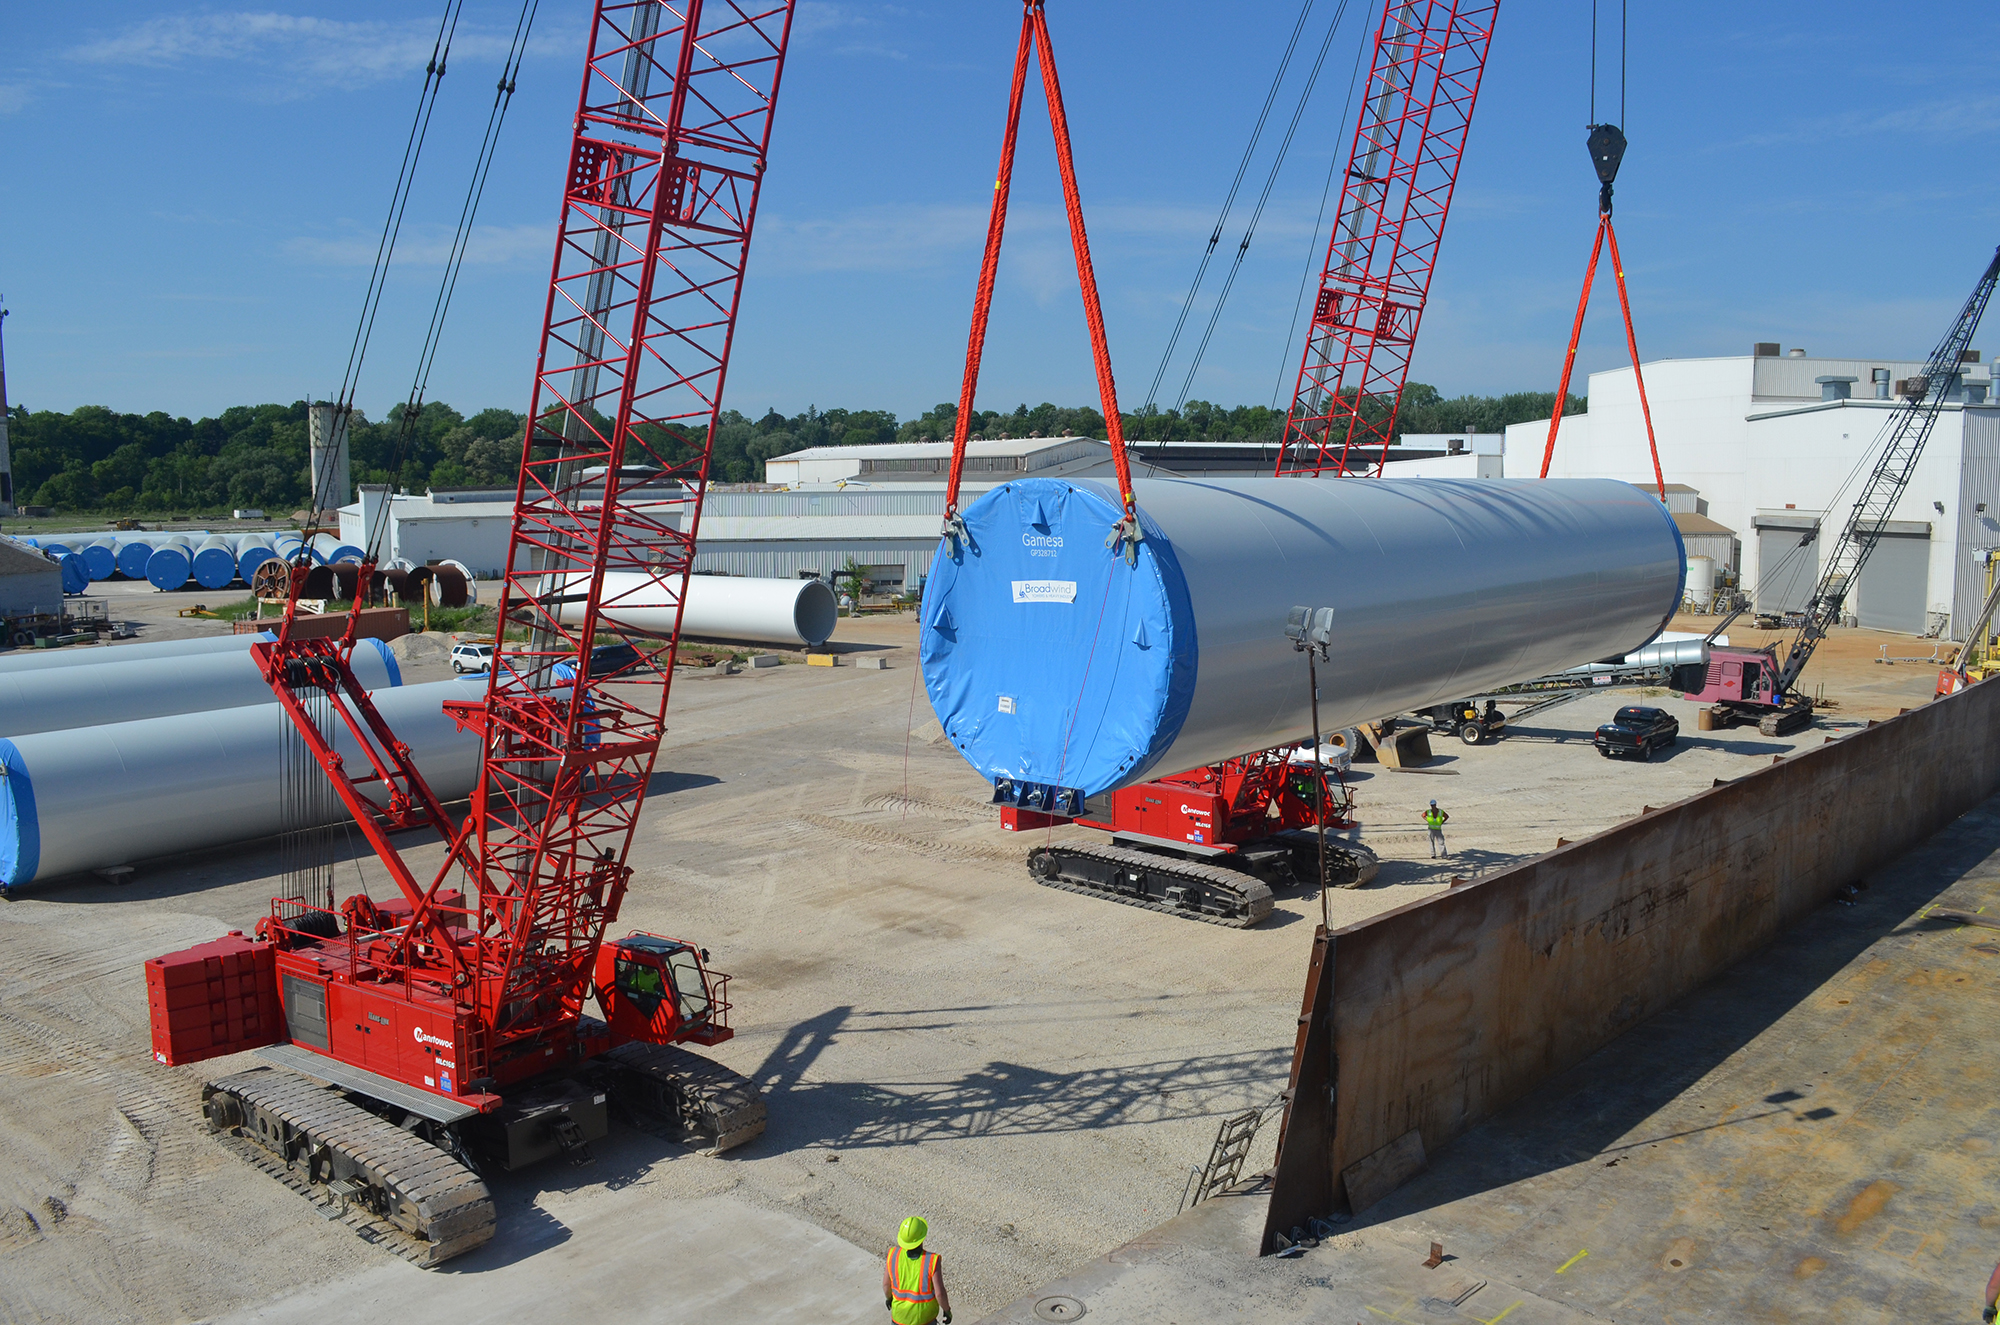 MLC165s give rise to barge-shipping of wind turbine towers - 1.JPG